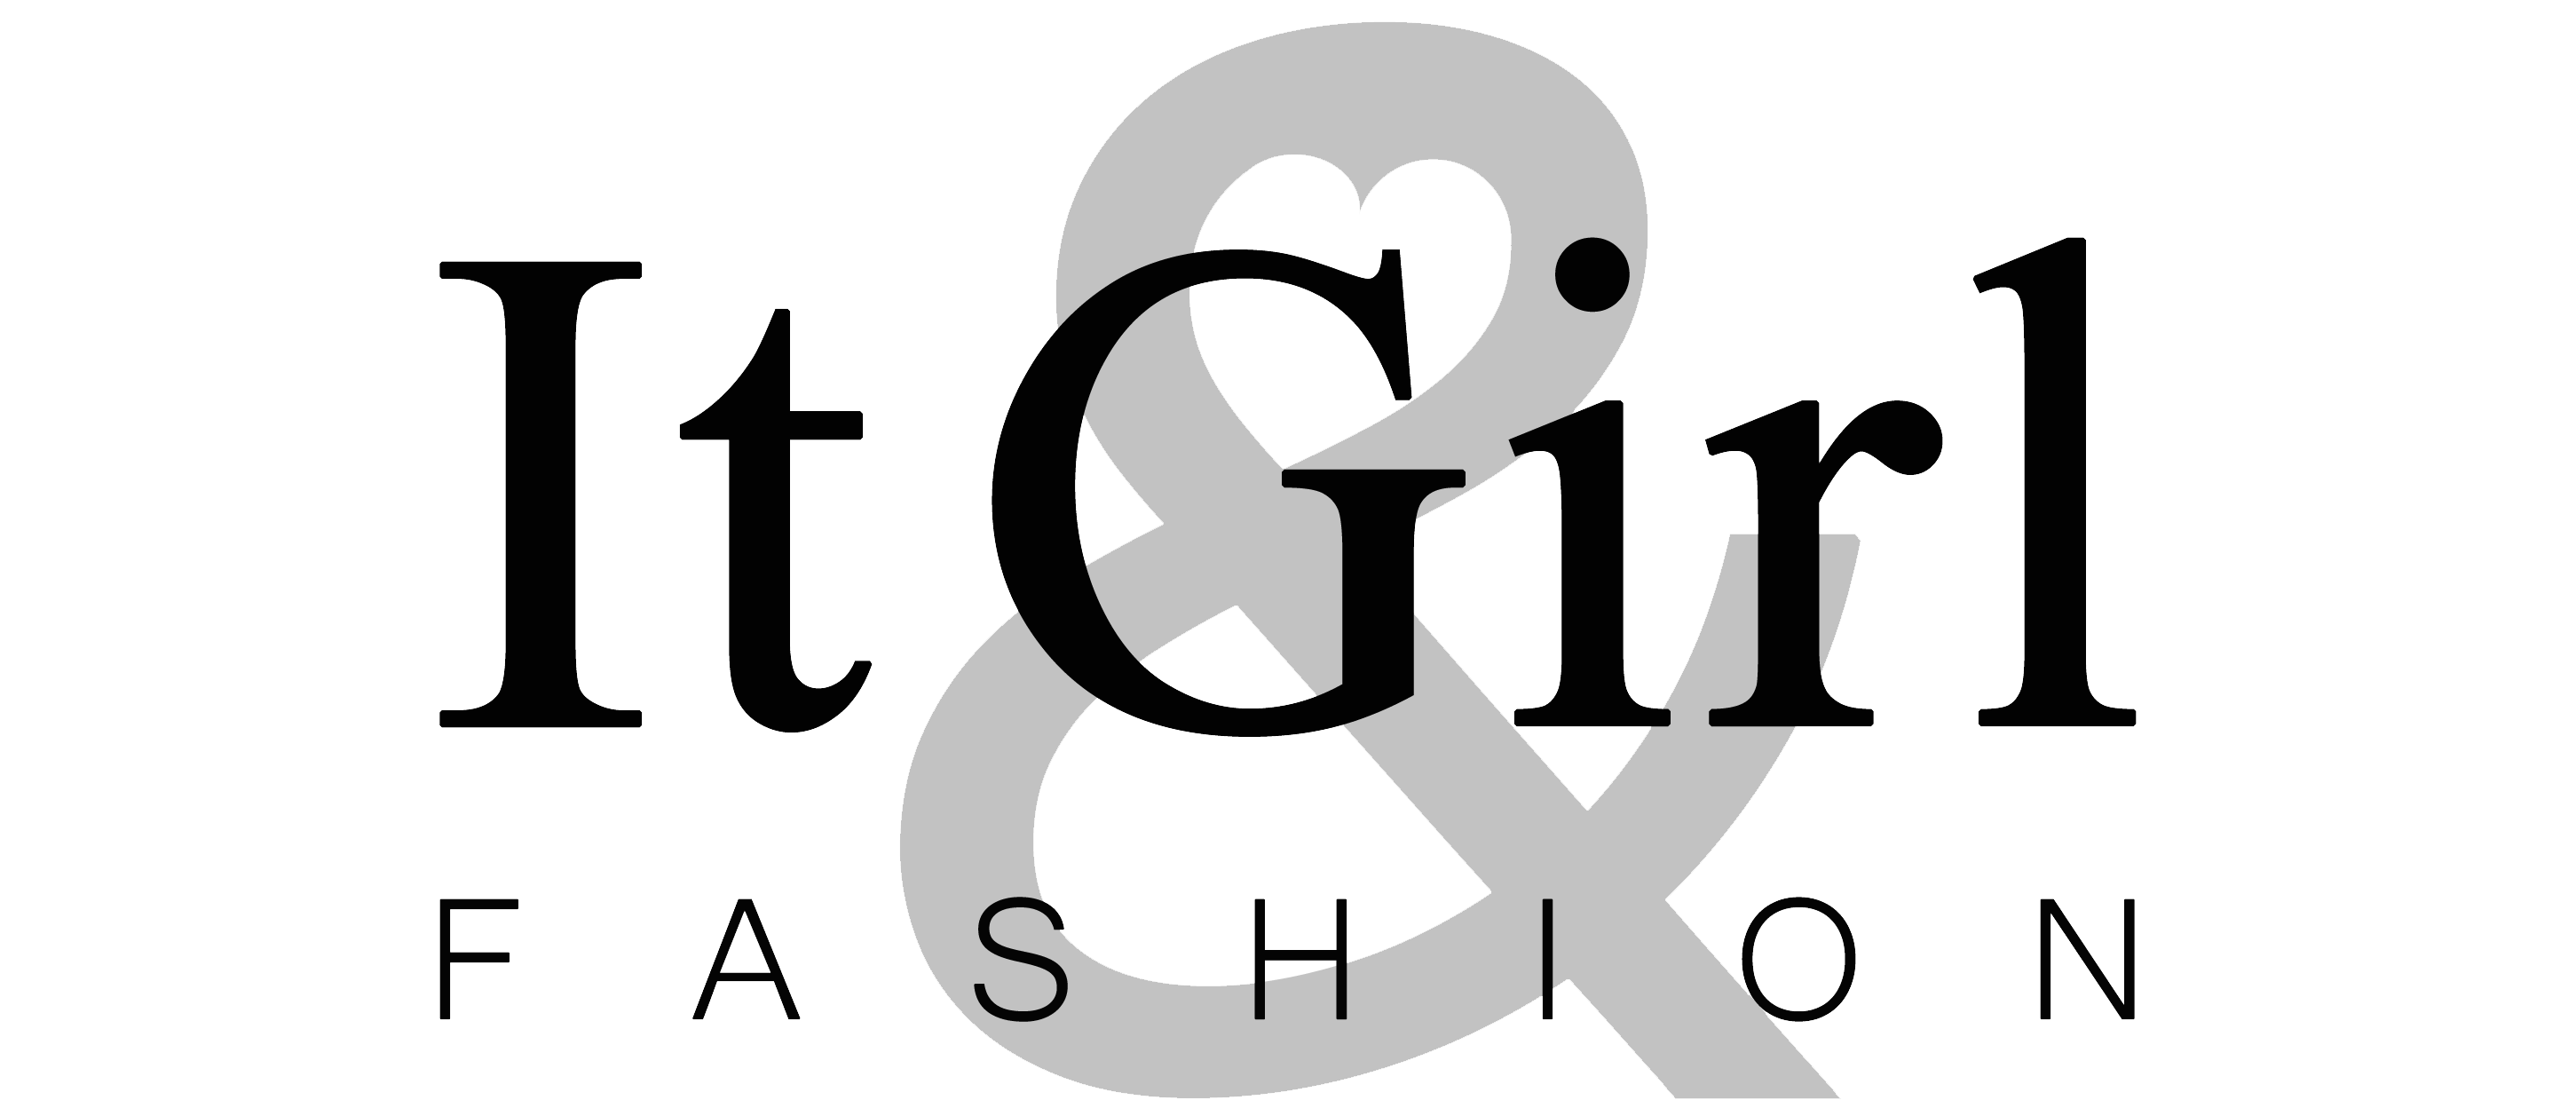 Itgirl mailing list - Access special deals, behind the scenes and your chance to be posted to our Instagram Account